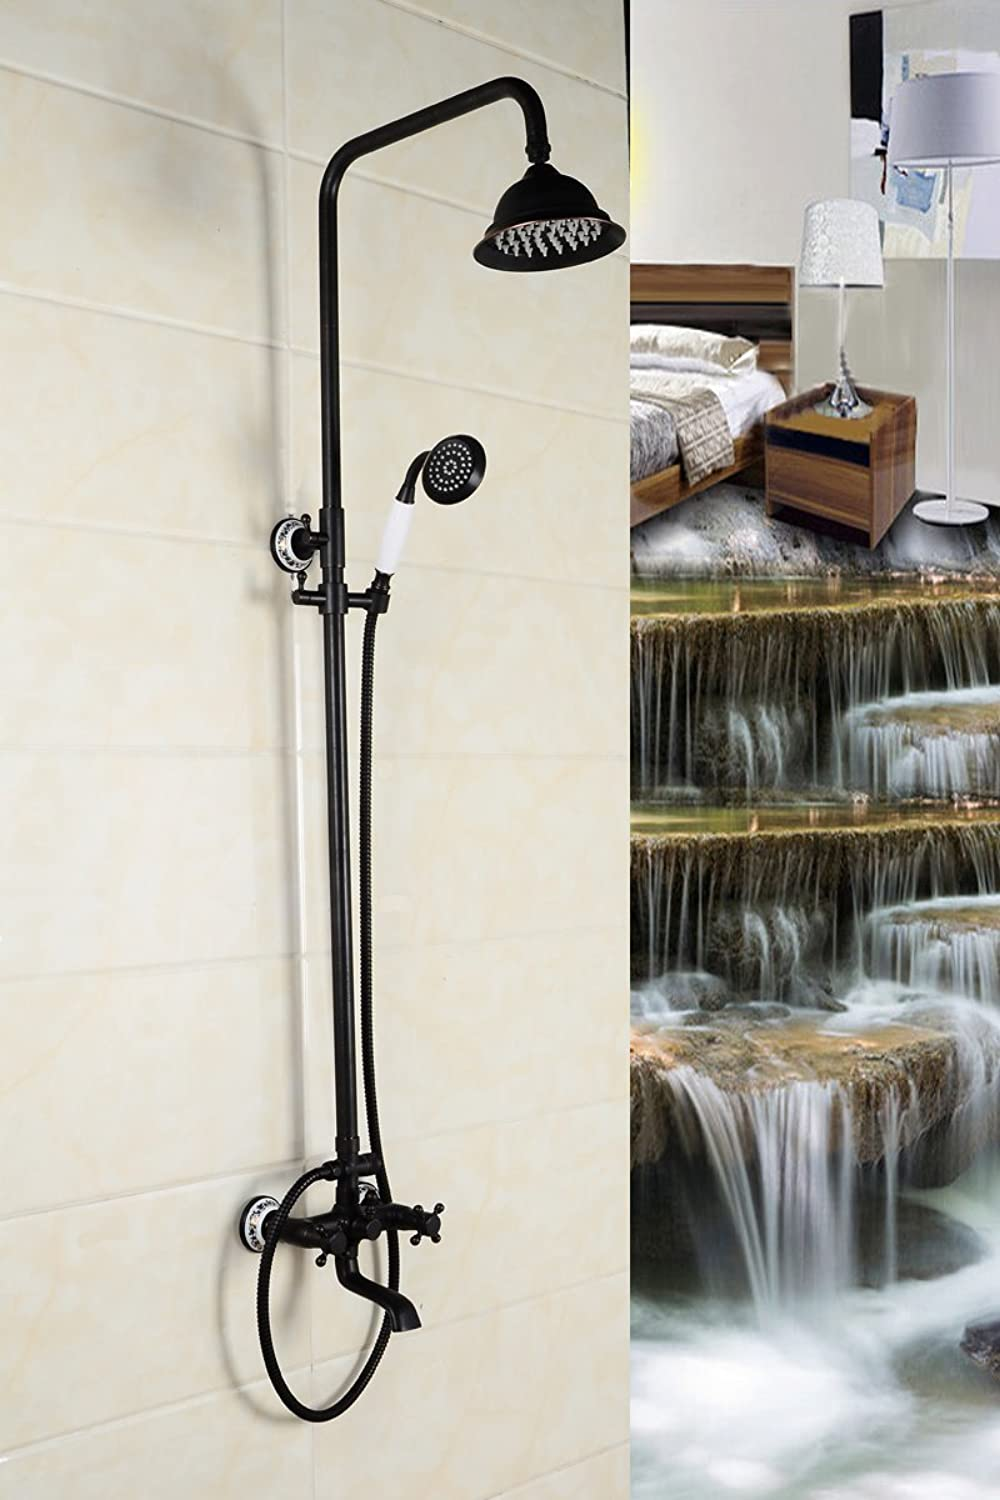 NewBorn Faucet Kitchen Or Bathroom Sink Mixer Tap Black Into The Wall Mounted Bath Shower Solid Brass Retro Shower Kit Full Copper Black Black Water Tap Shower Set Dsc5878